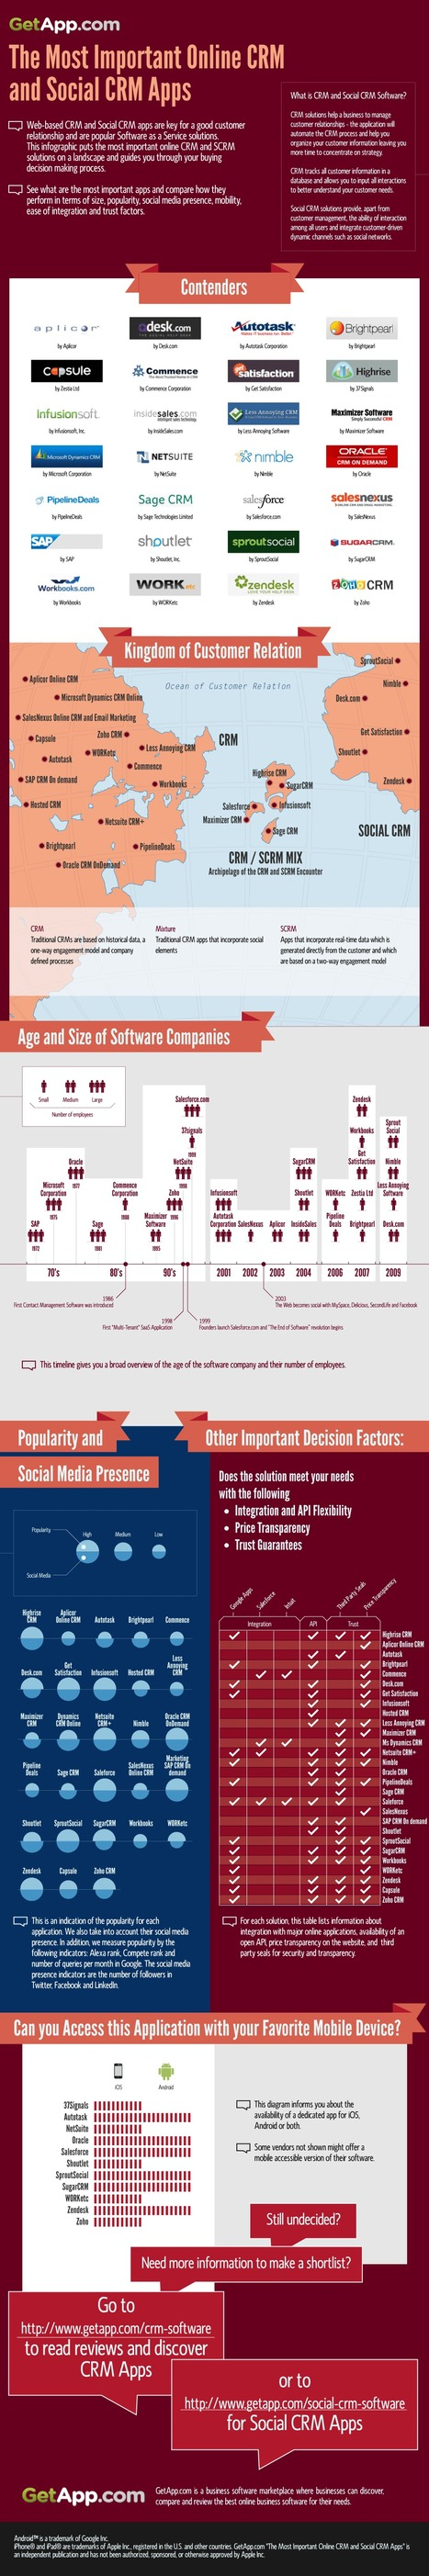 Does Social Customer Relationship Management (CRM) Exist? Maybe [Infographic] | Enterprise Social Media | Scoop.it